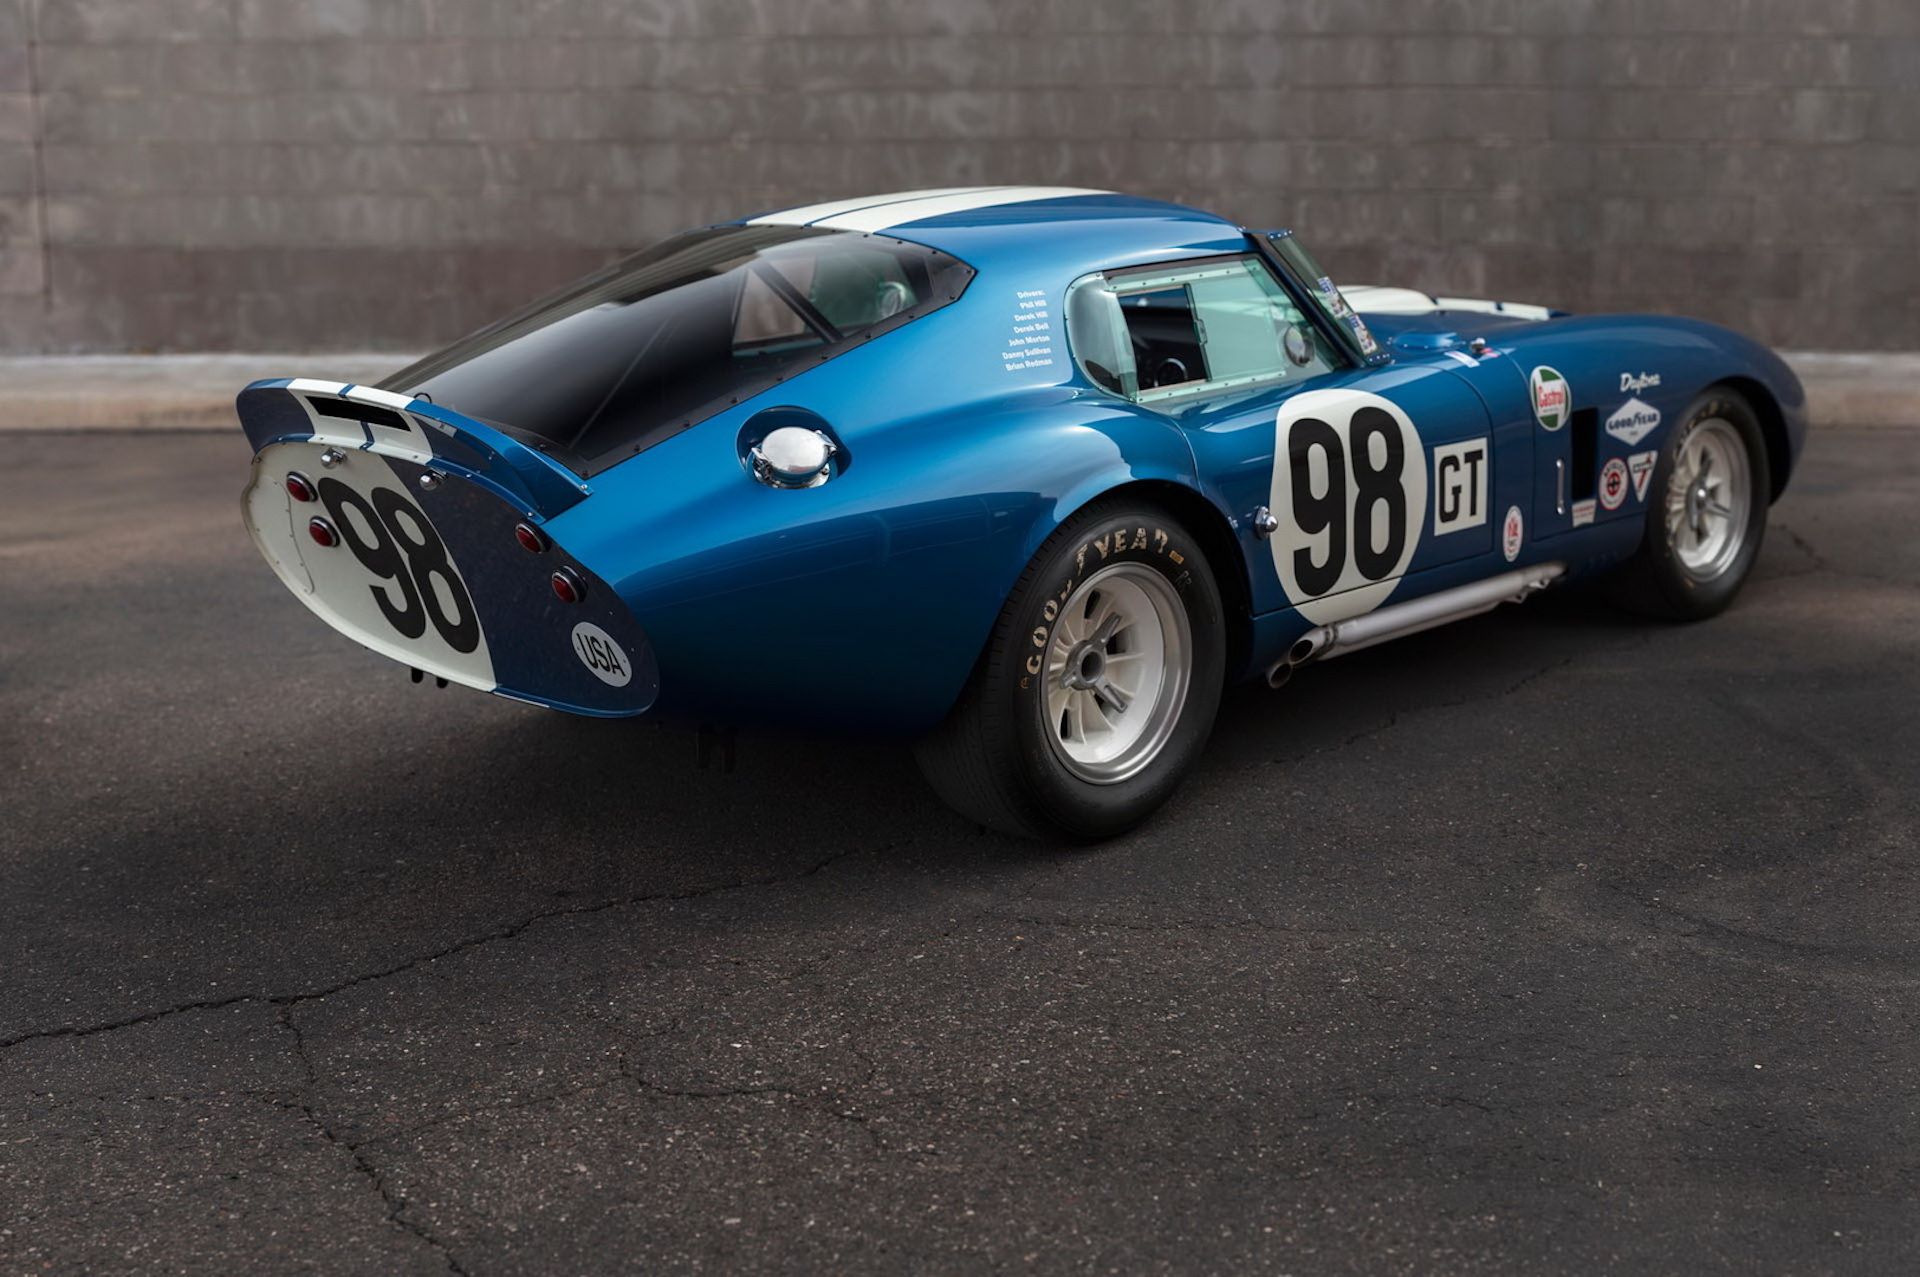 Daytona-Cobra-Carroll-Shelby-auction-AC-Cobra-18